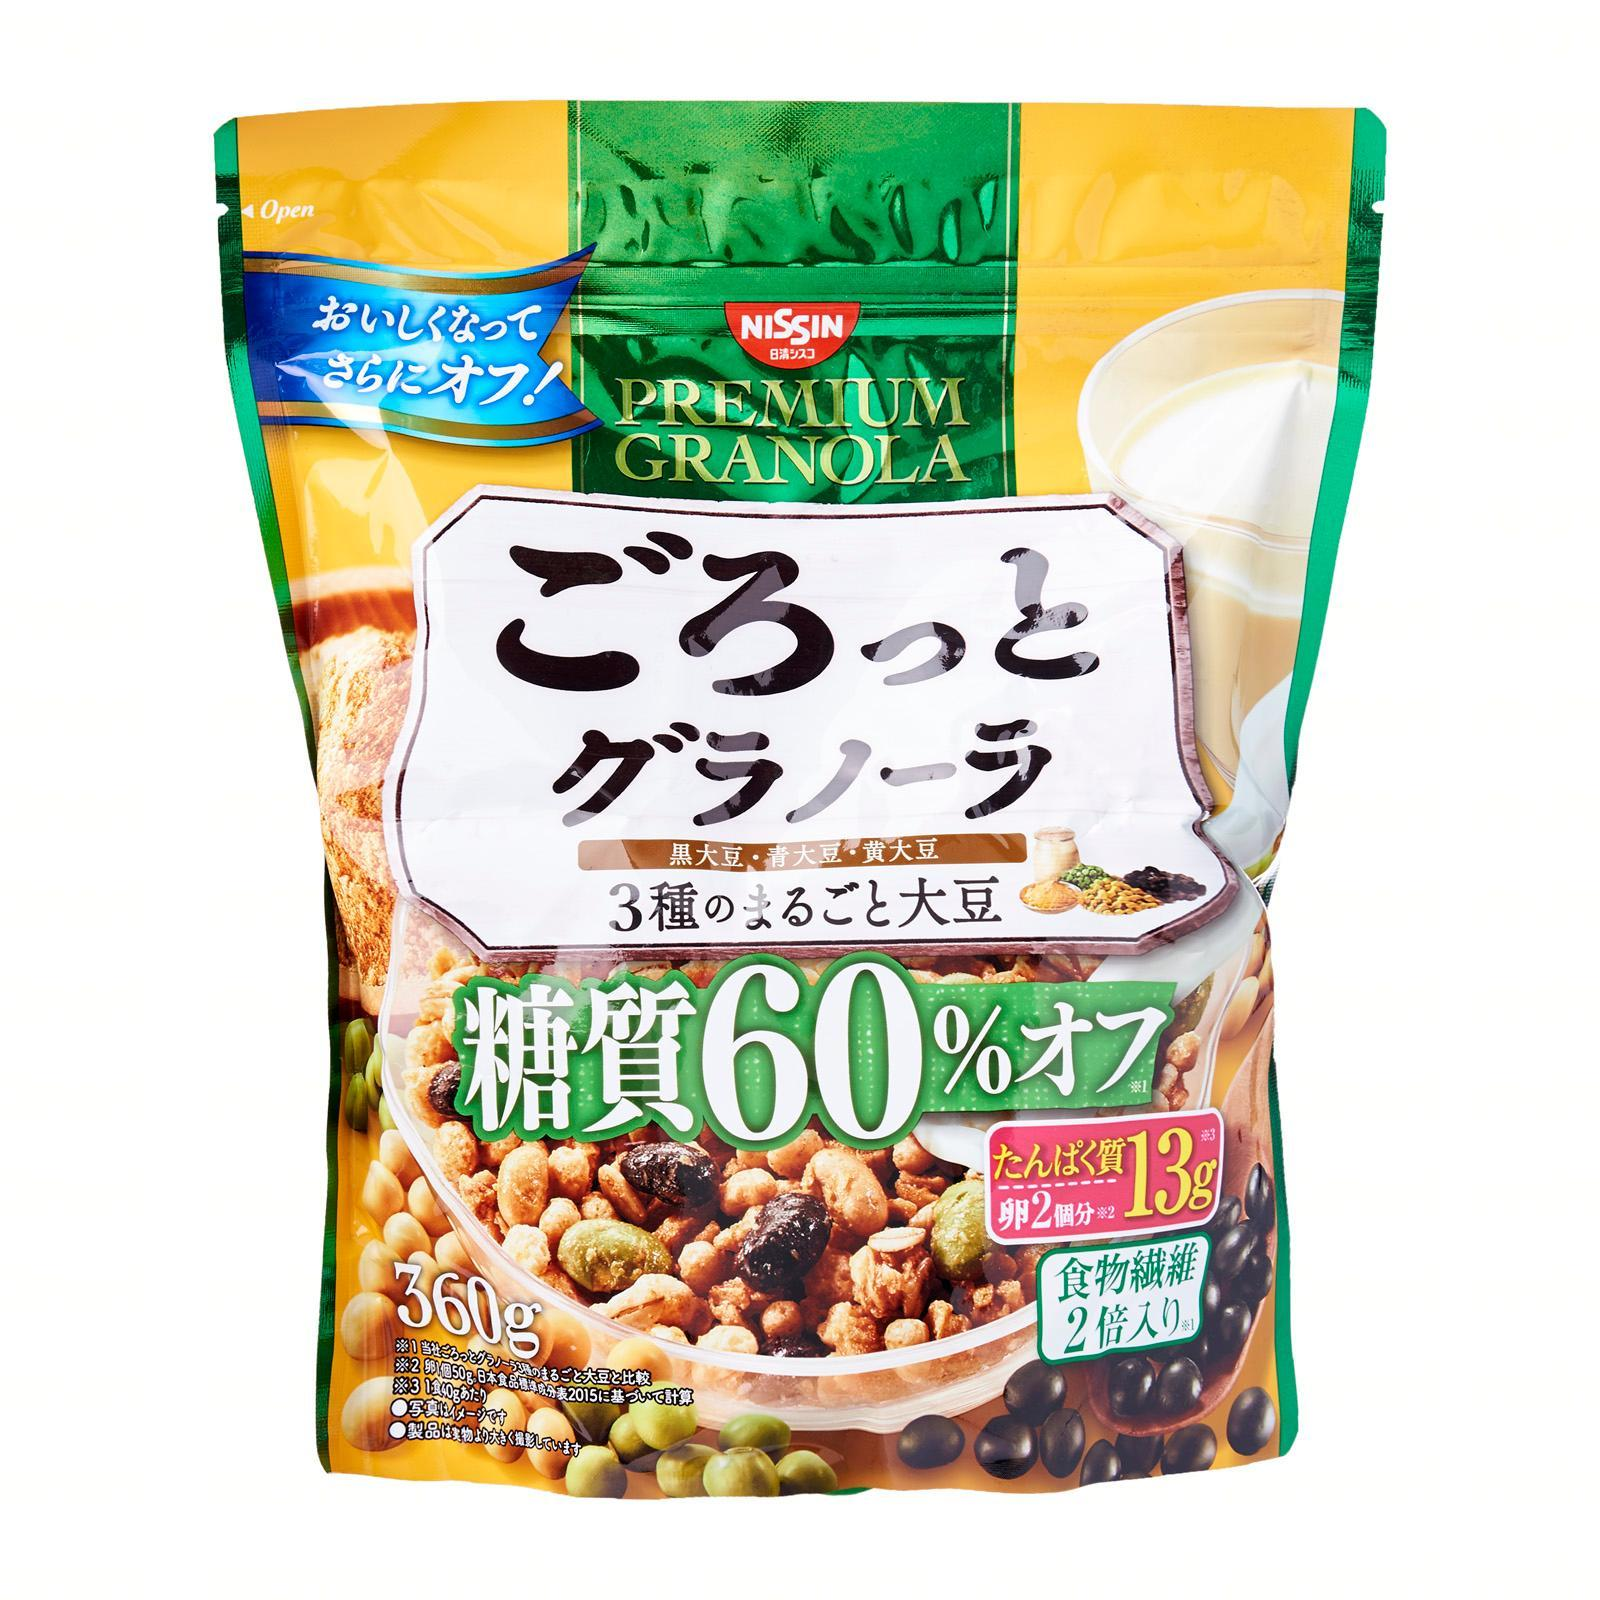 Nissin Gorotto Sugar 60 Percent Off Soybean Flavour Granola